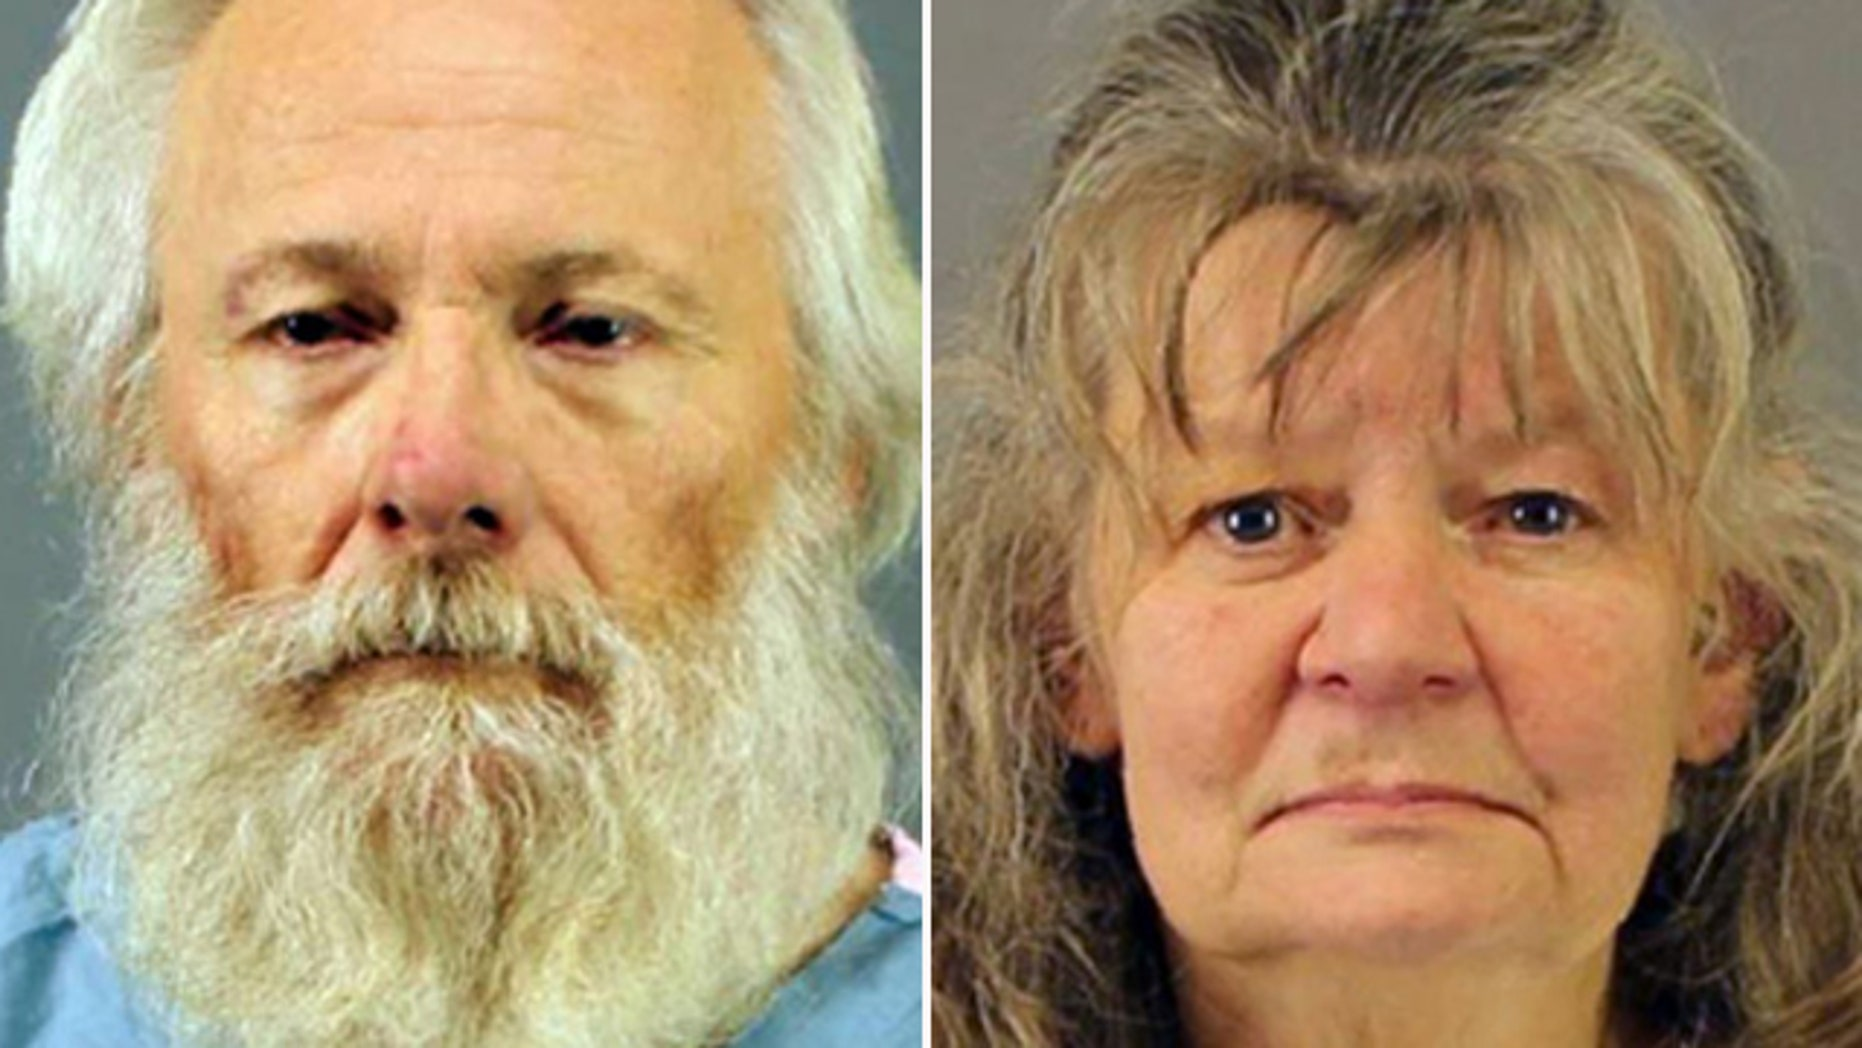 Oct. 13, 2015: These photos show Bruce and Deborah Leonard, who have been charged with first-degree manslaughter in the beating death of their son in a New York state church. (New Hartford Police Department)